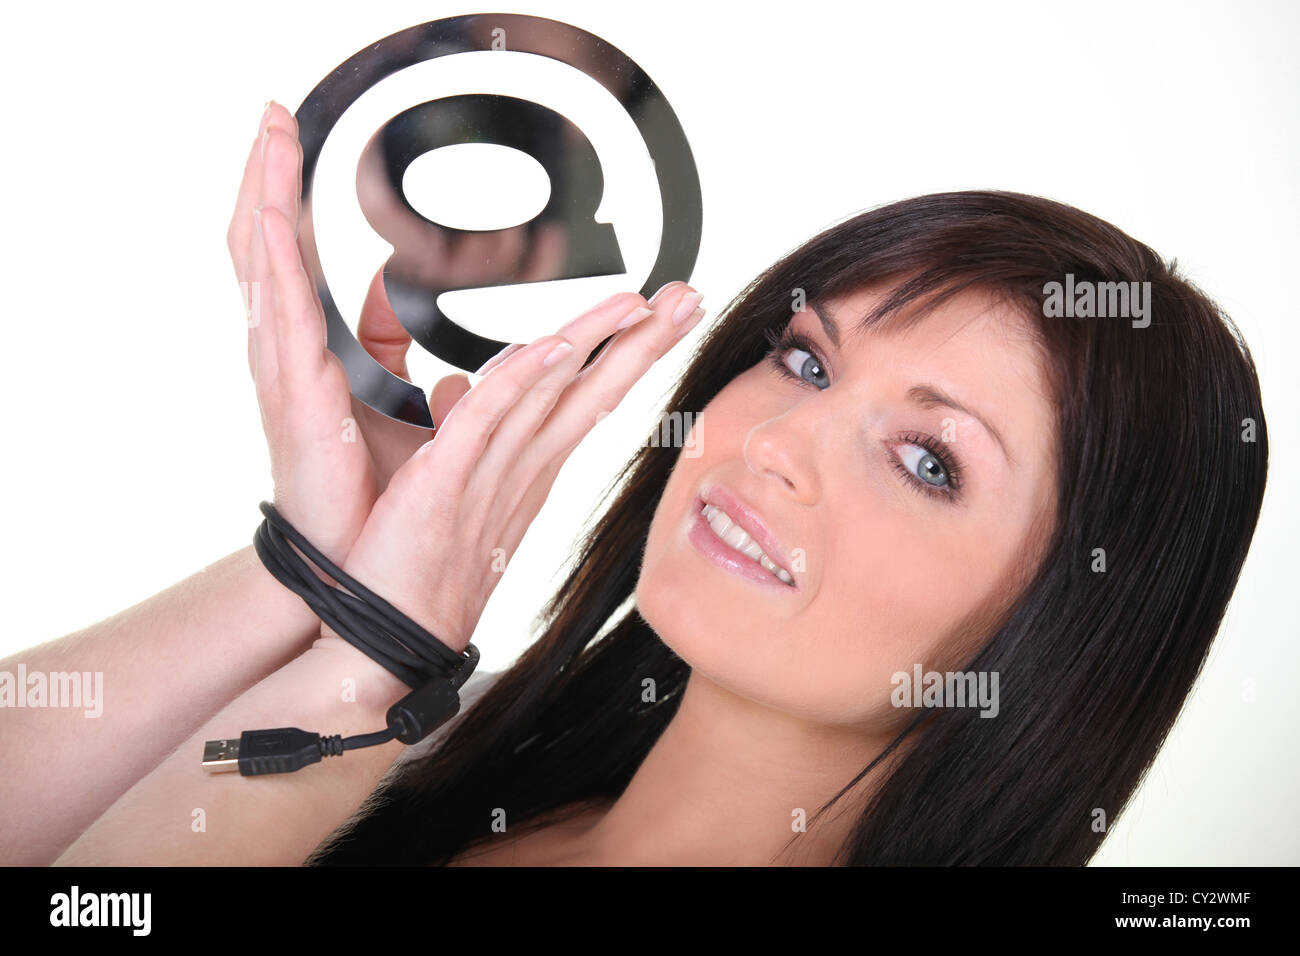 Woman holding an @ sign - Stock Image